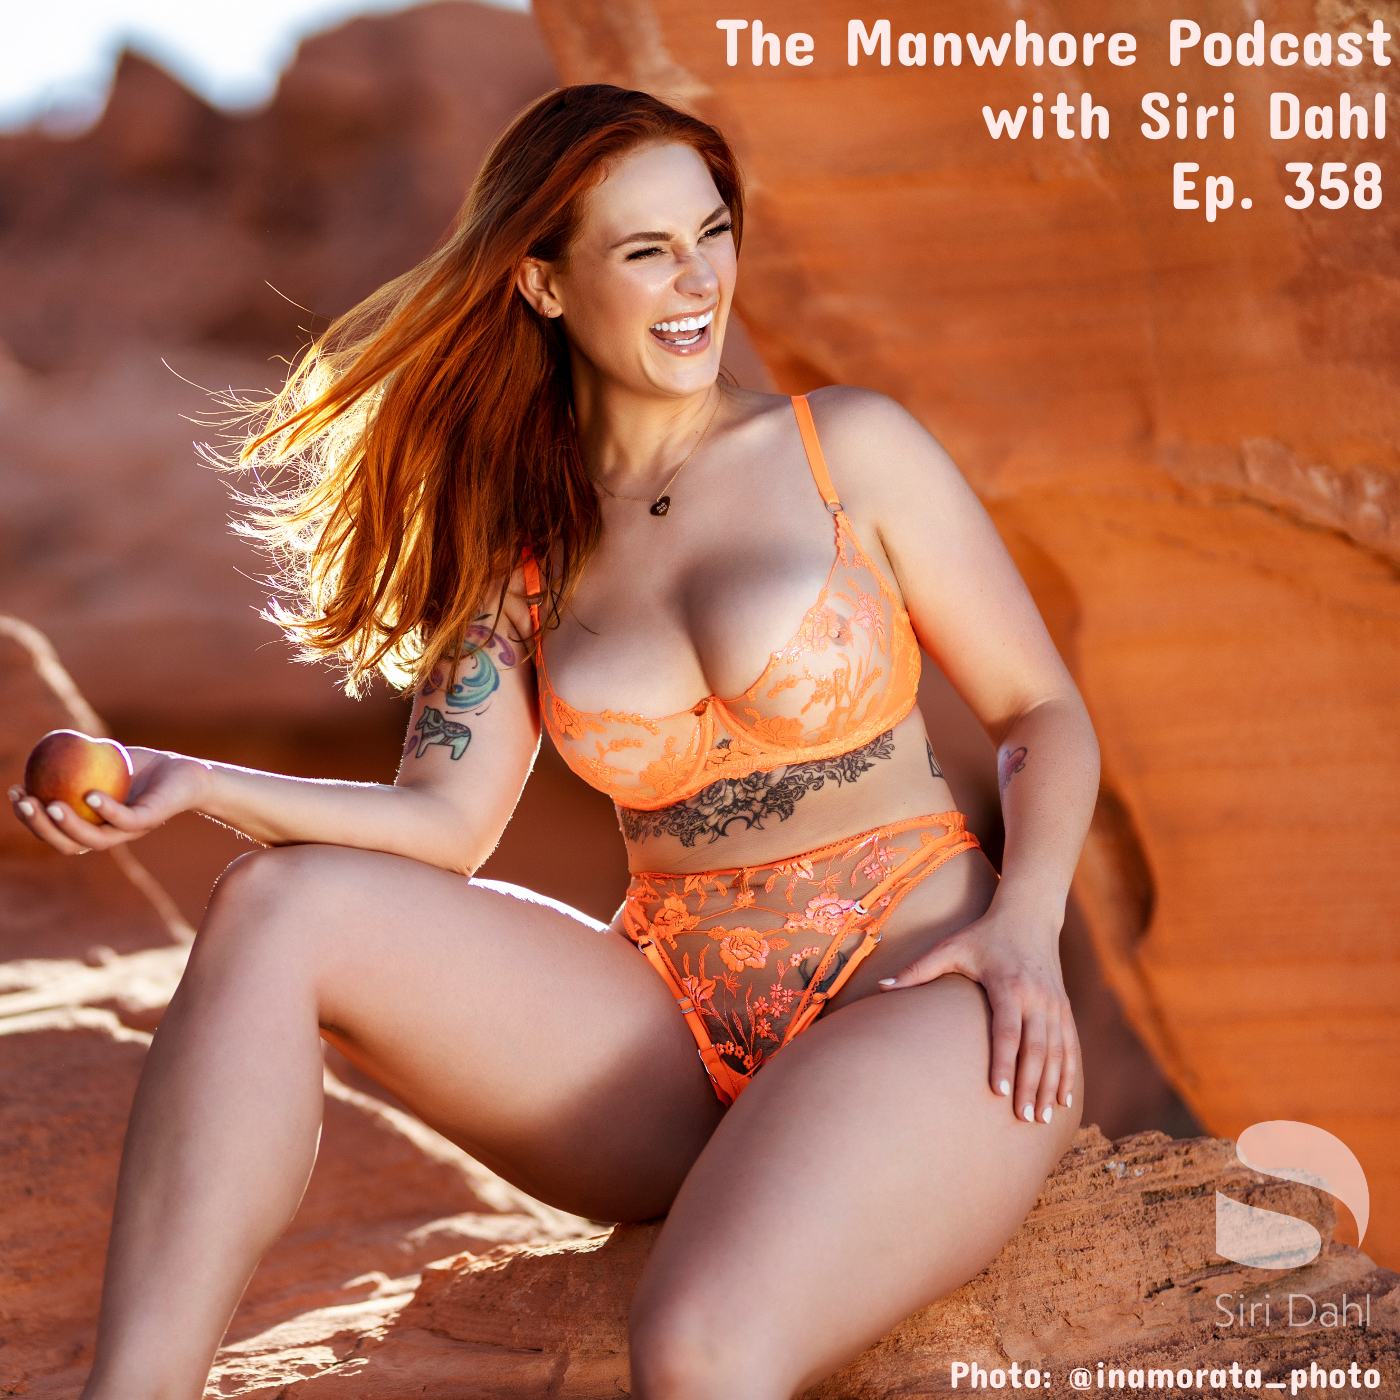 The Manwhore Podcast: A Sex-Positive Quest - Ep. 358: Porn Retirement, Mental Health, and Finding Authenticity with Siri Dahl // Lesbian Bar Project